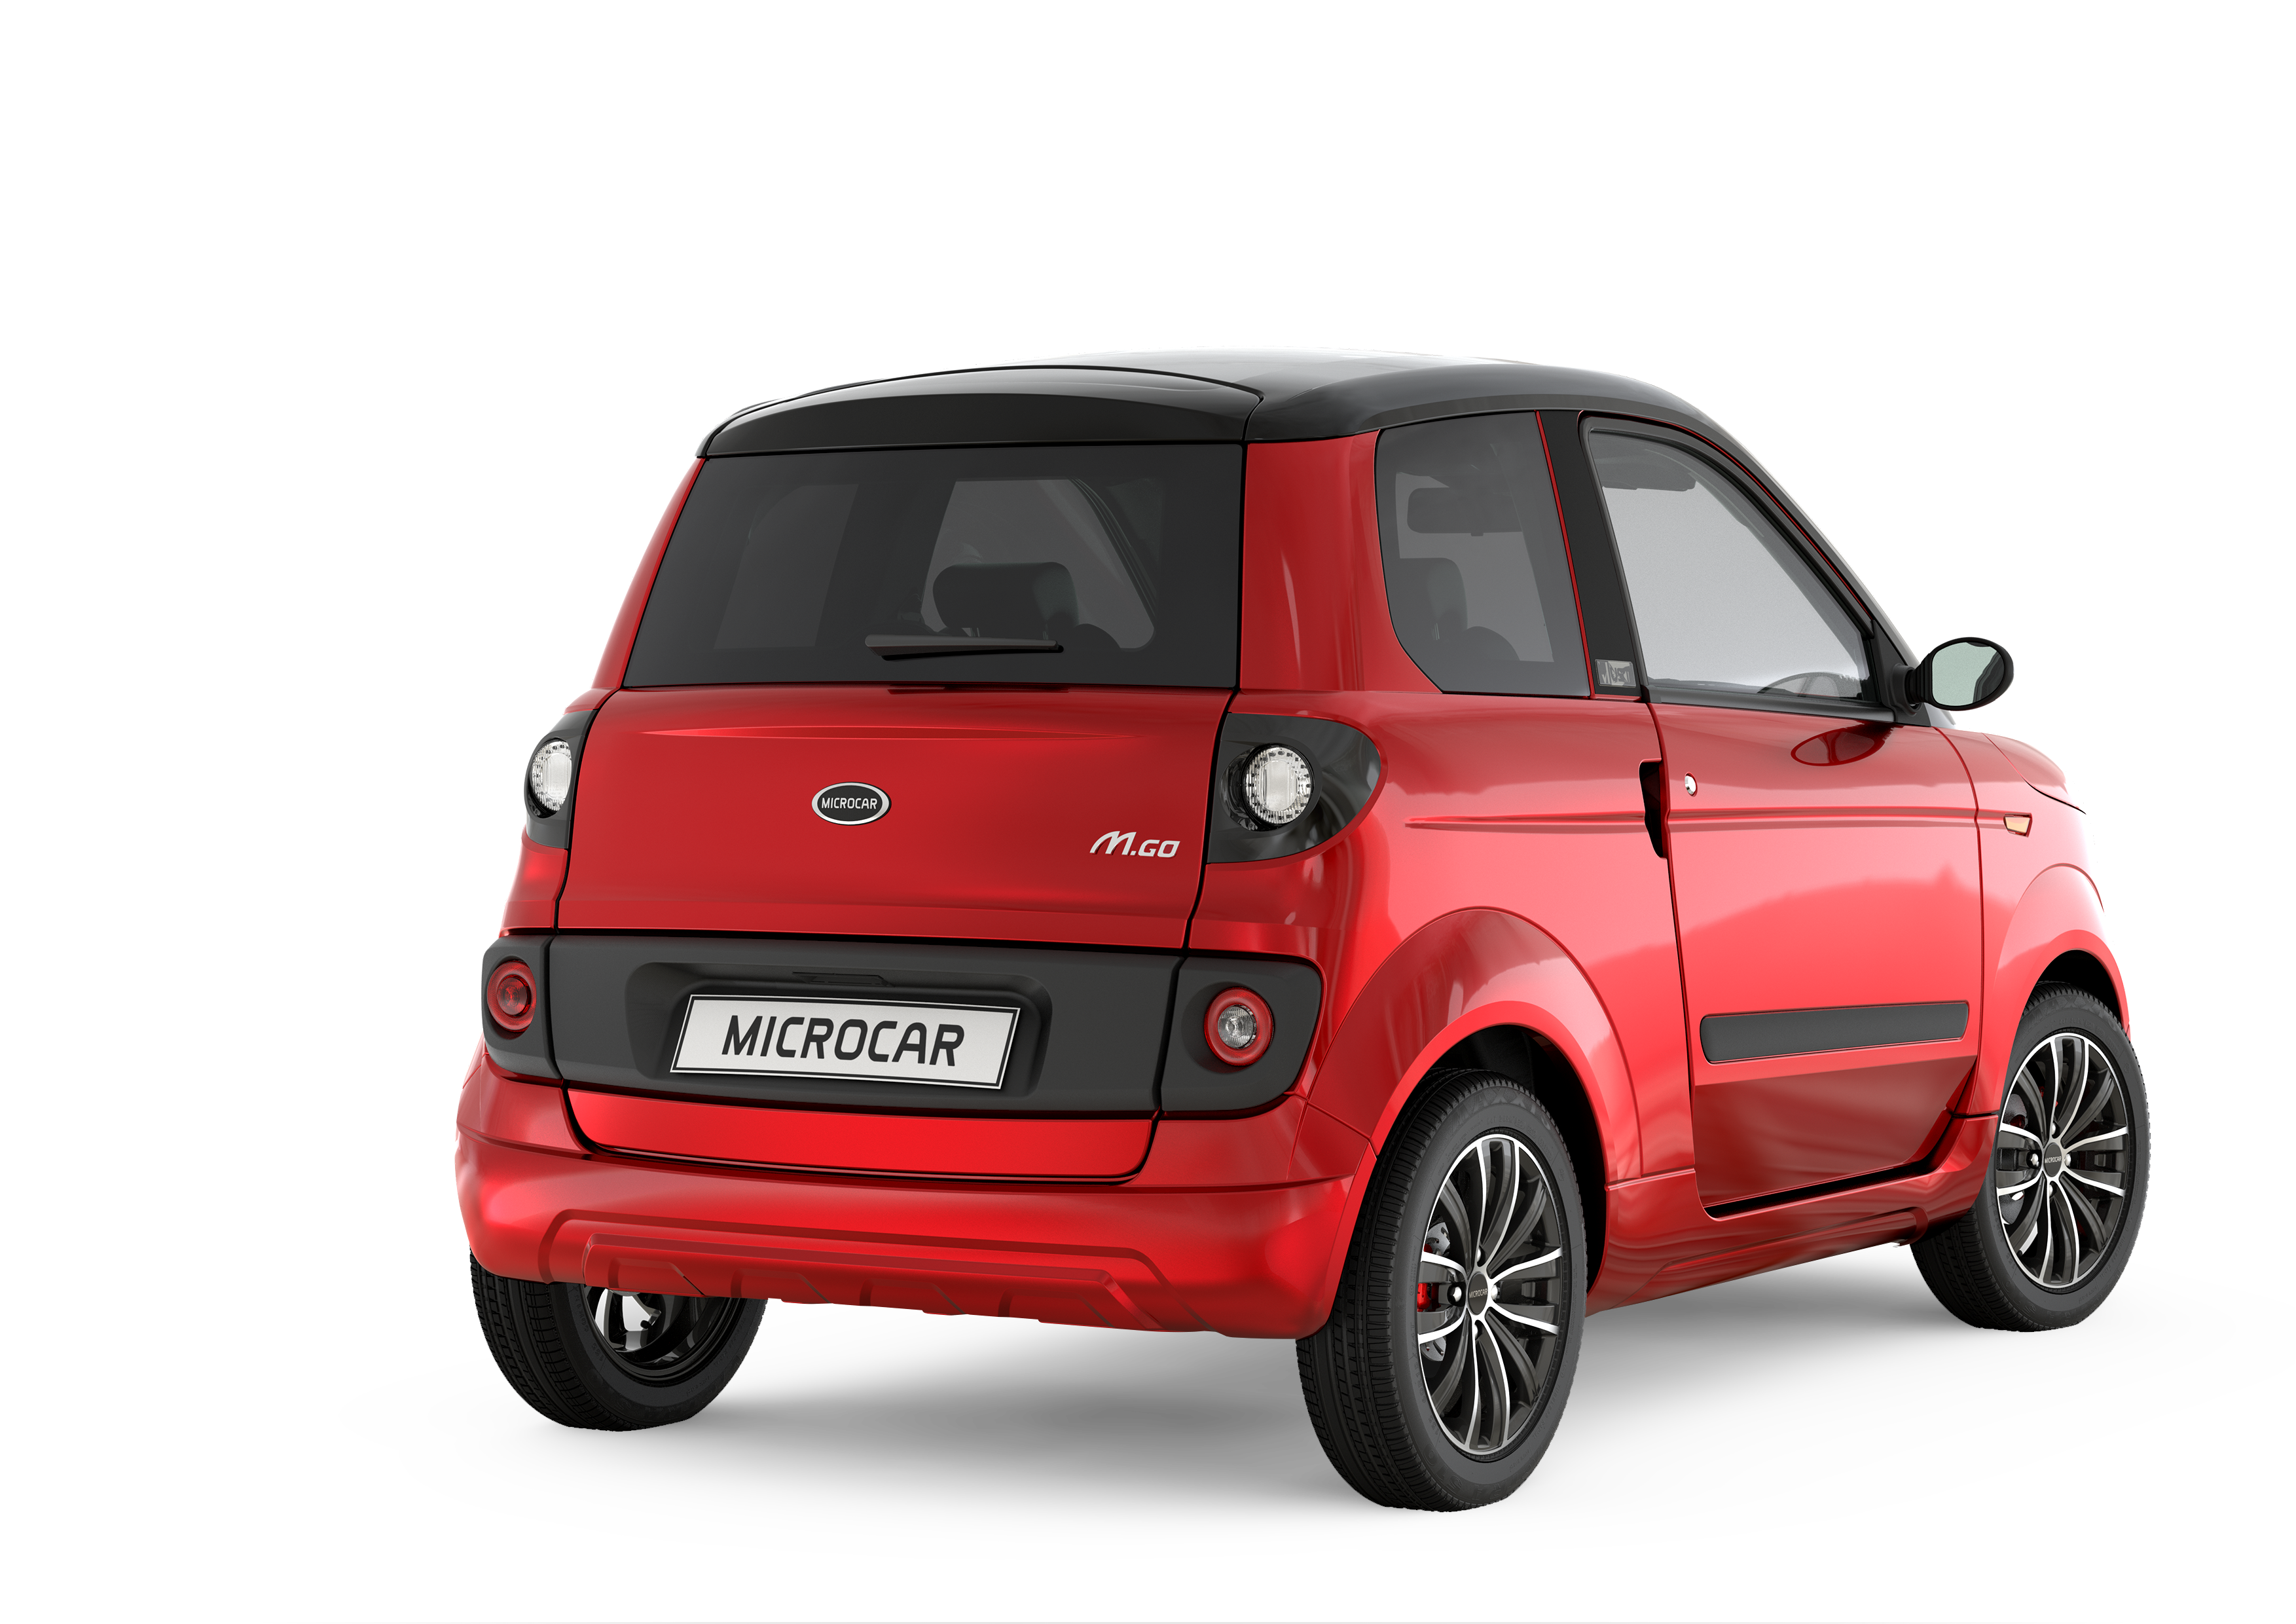 Microcar MGO 3-4 AR MUST ROUGE TOLODEO Brest Auto Diffusion